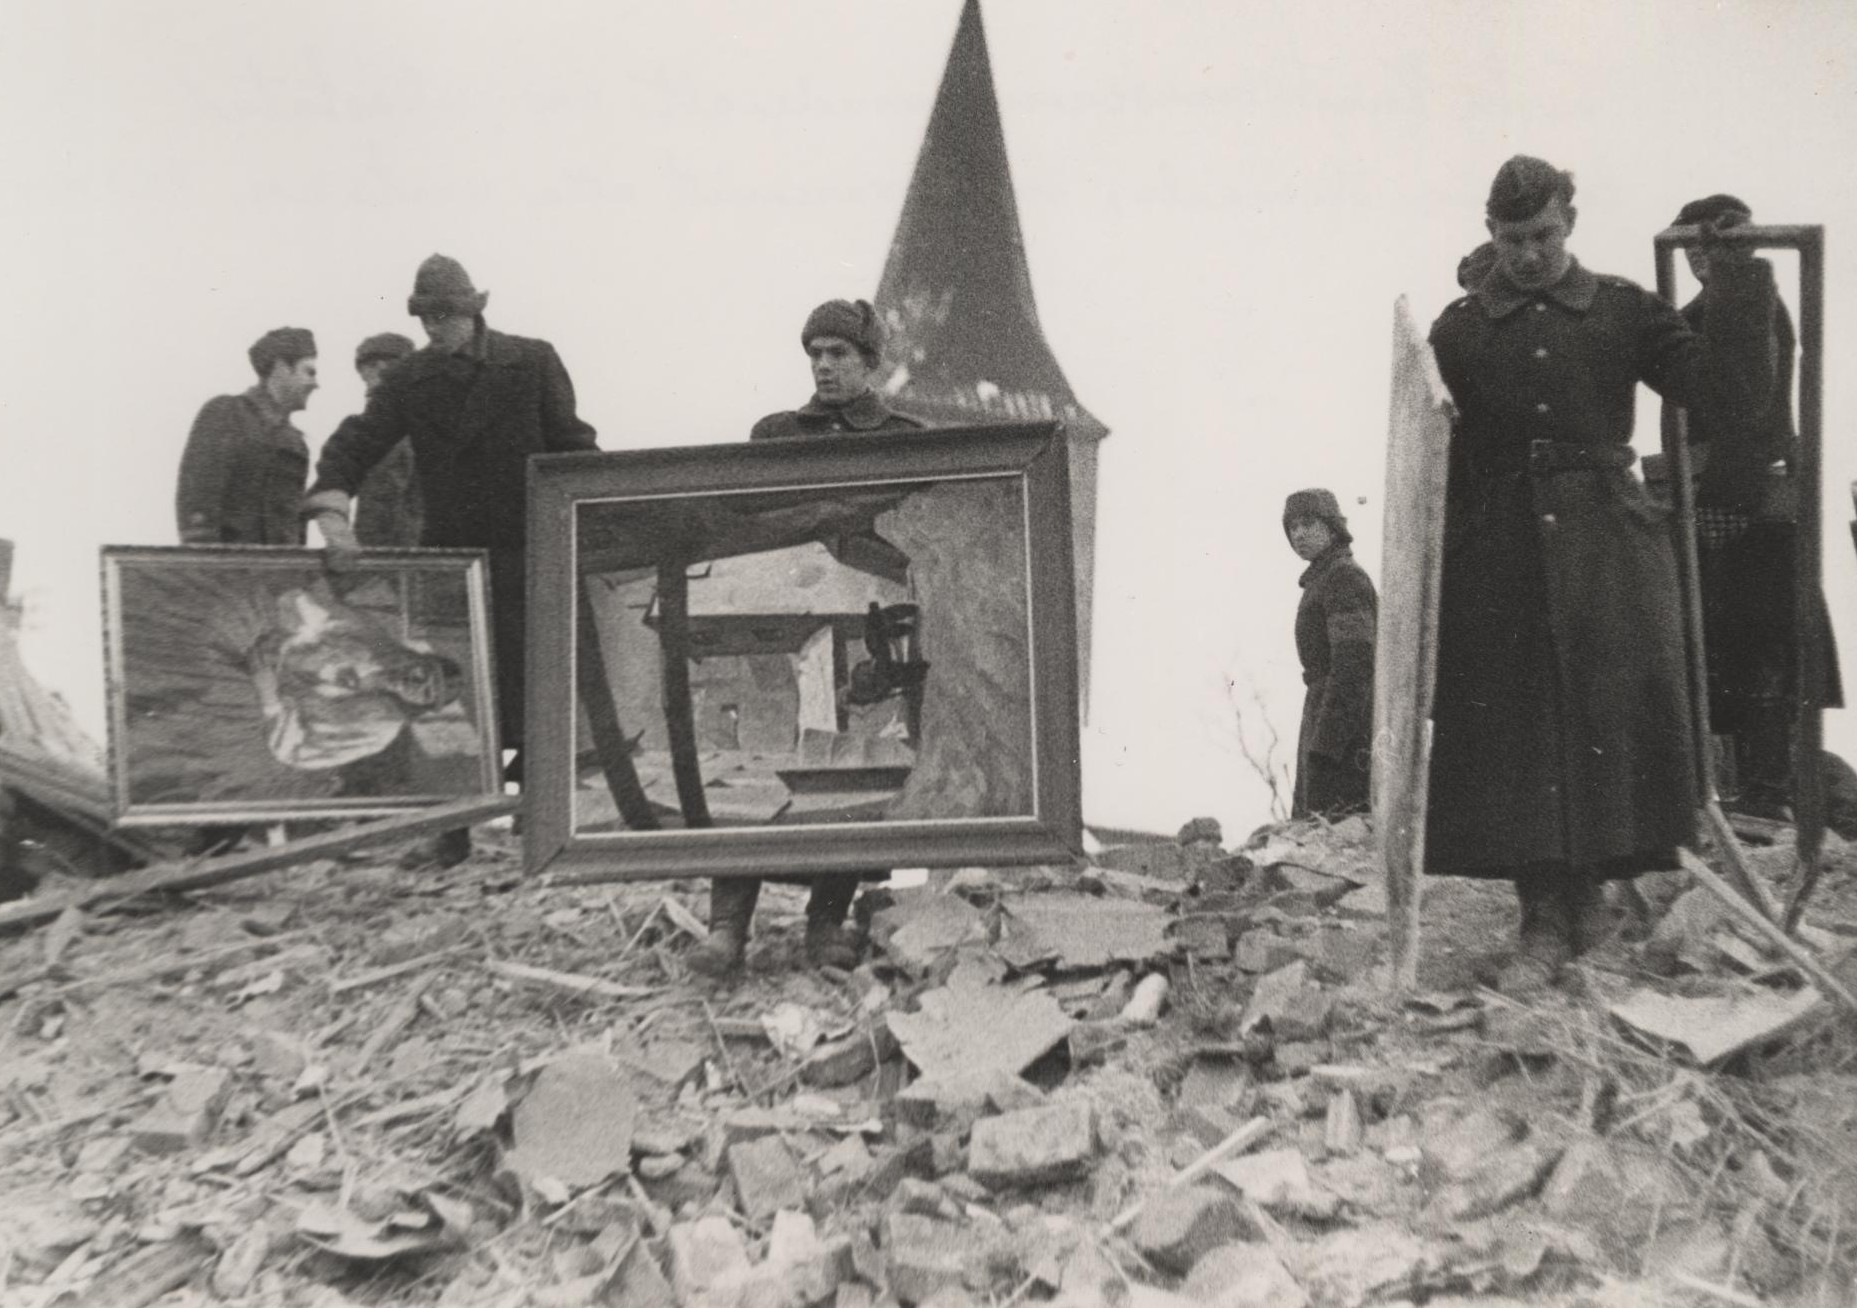 Saving oil paintings from the ruins on 29.01.1943.